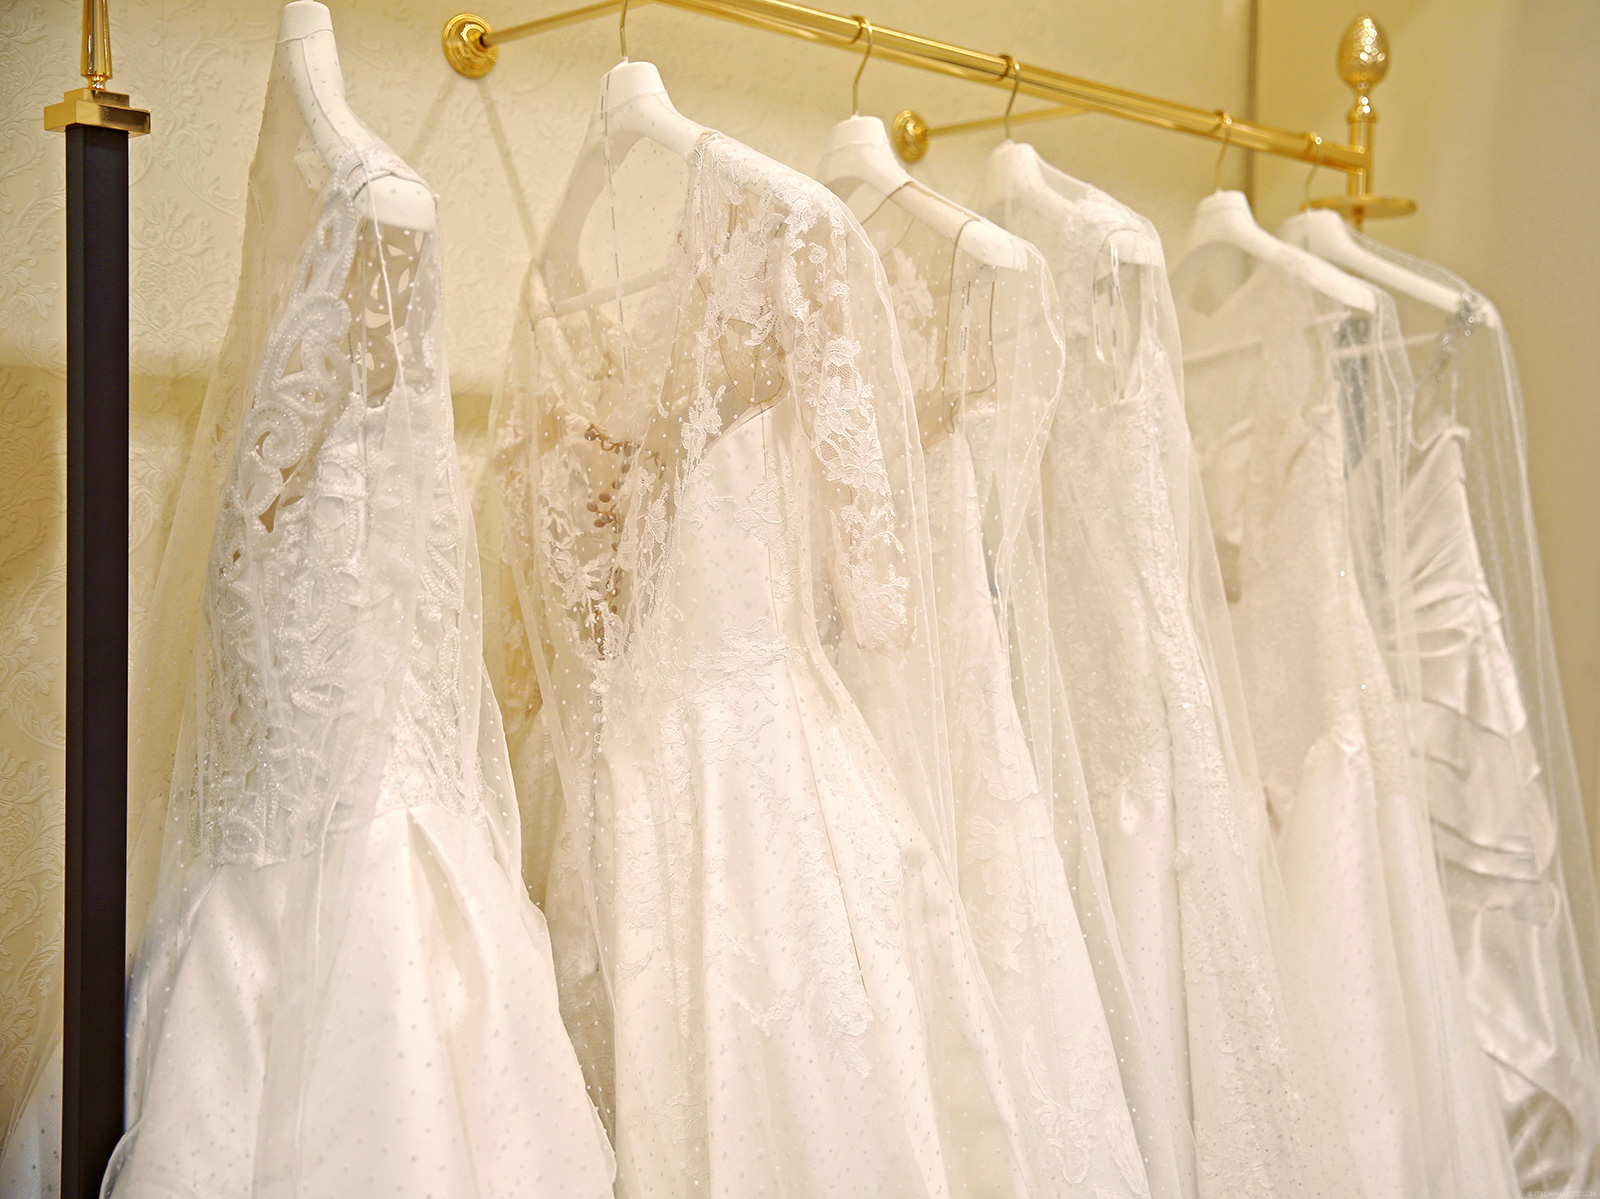 Wedding Dress Hangers 63 Awesome Related Posts